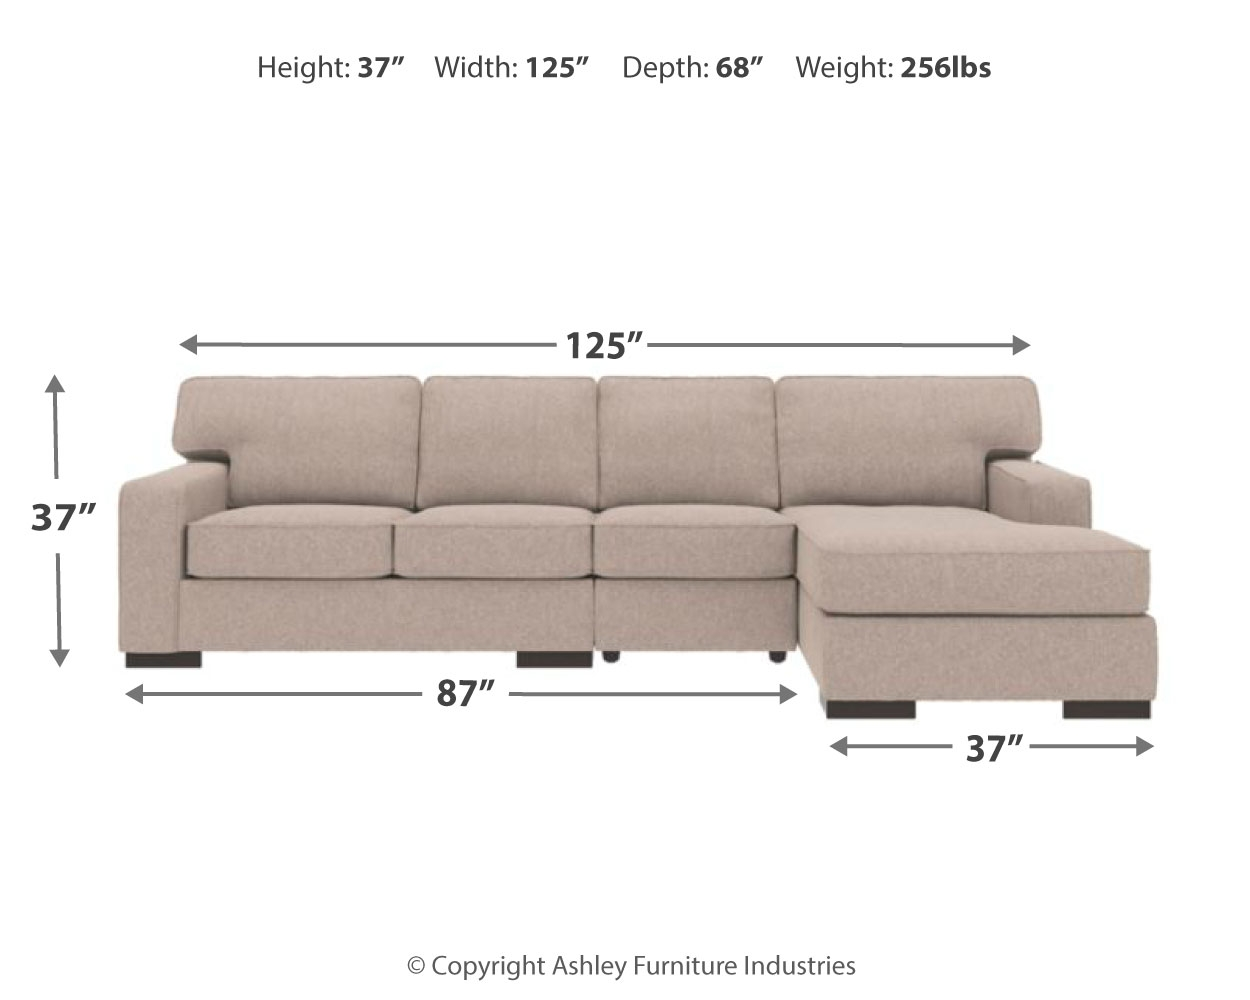 Ashlor Nuvella 174 3 Piece Sectional With Chaise 46005s11 Ashley Homestore